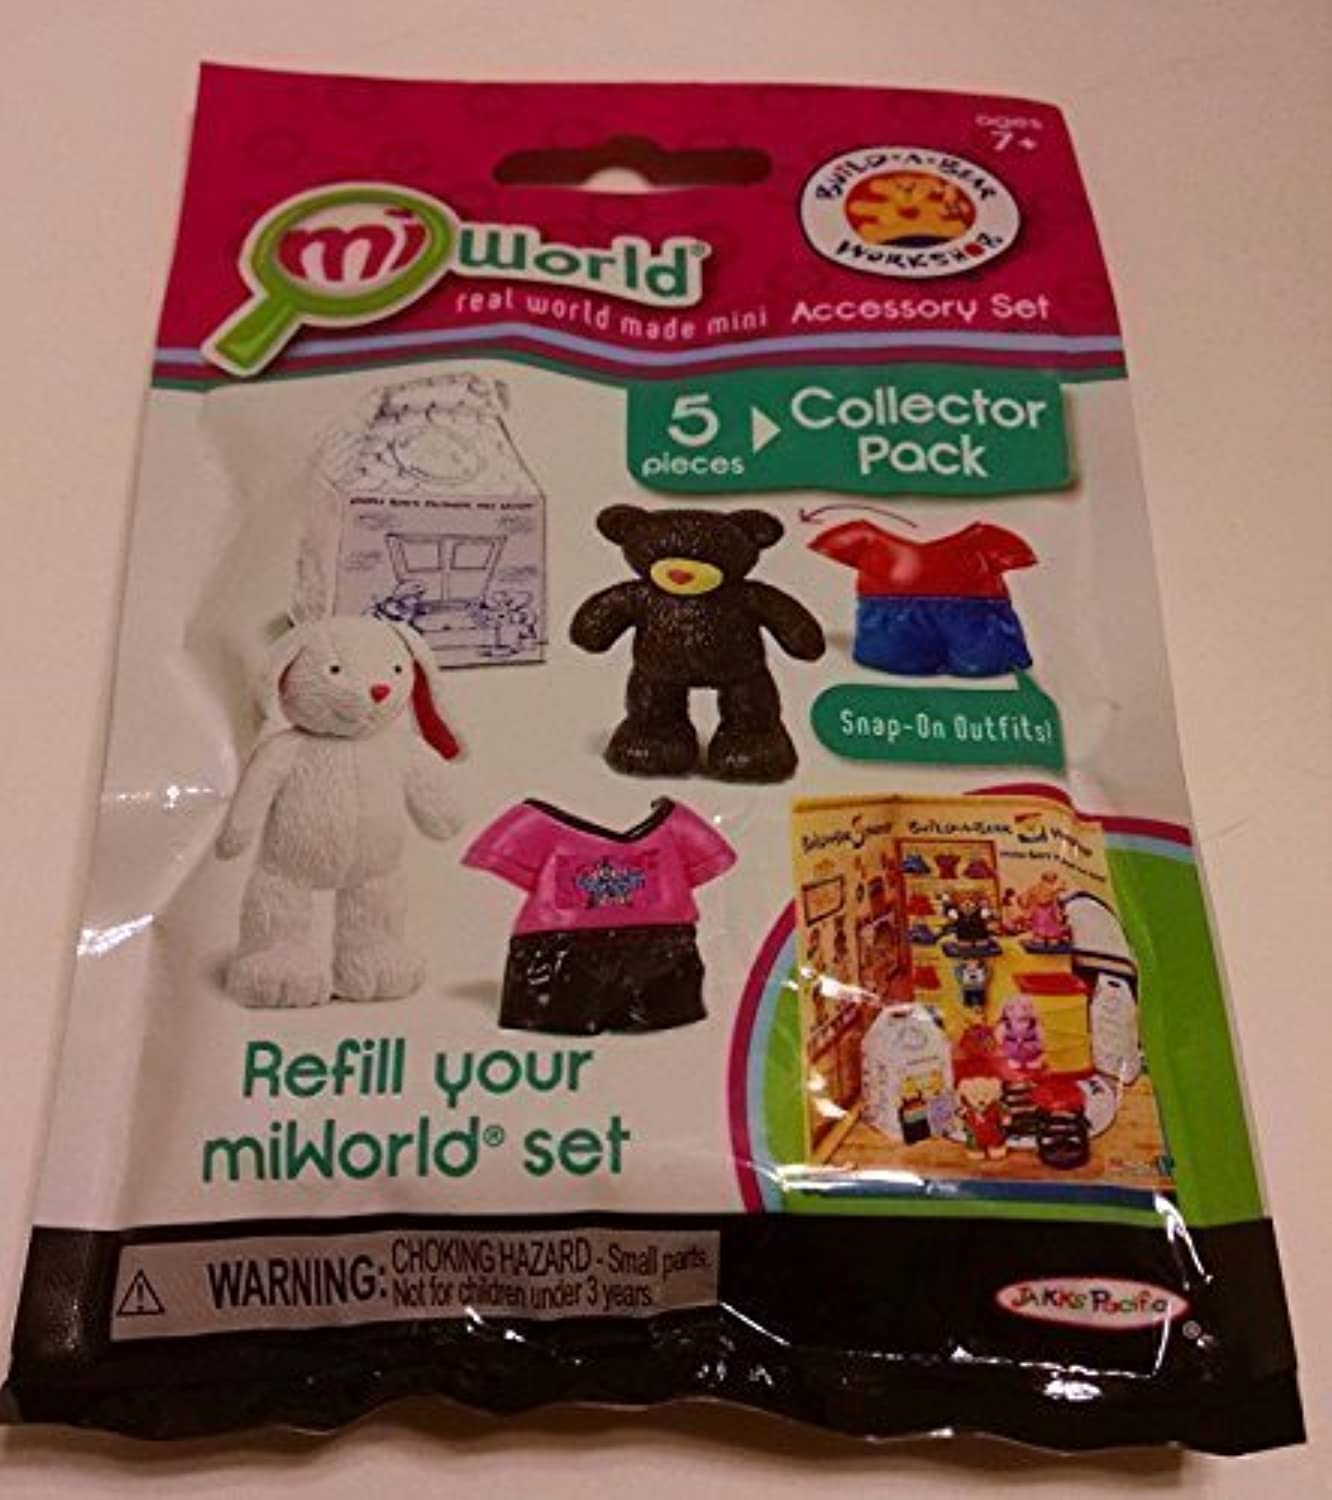 Miworld Build A Bear Workshop Accessory Set (5 Pc Collector Pack  1 Lil Cub, 1 Cuddley Bunny, 1 Cub Condo and 2 Snap On Outfits) by Jakks Pacific Mi World